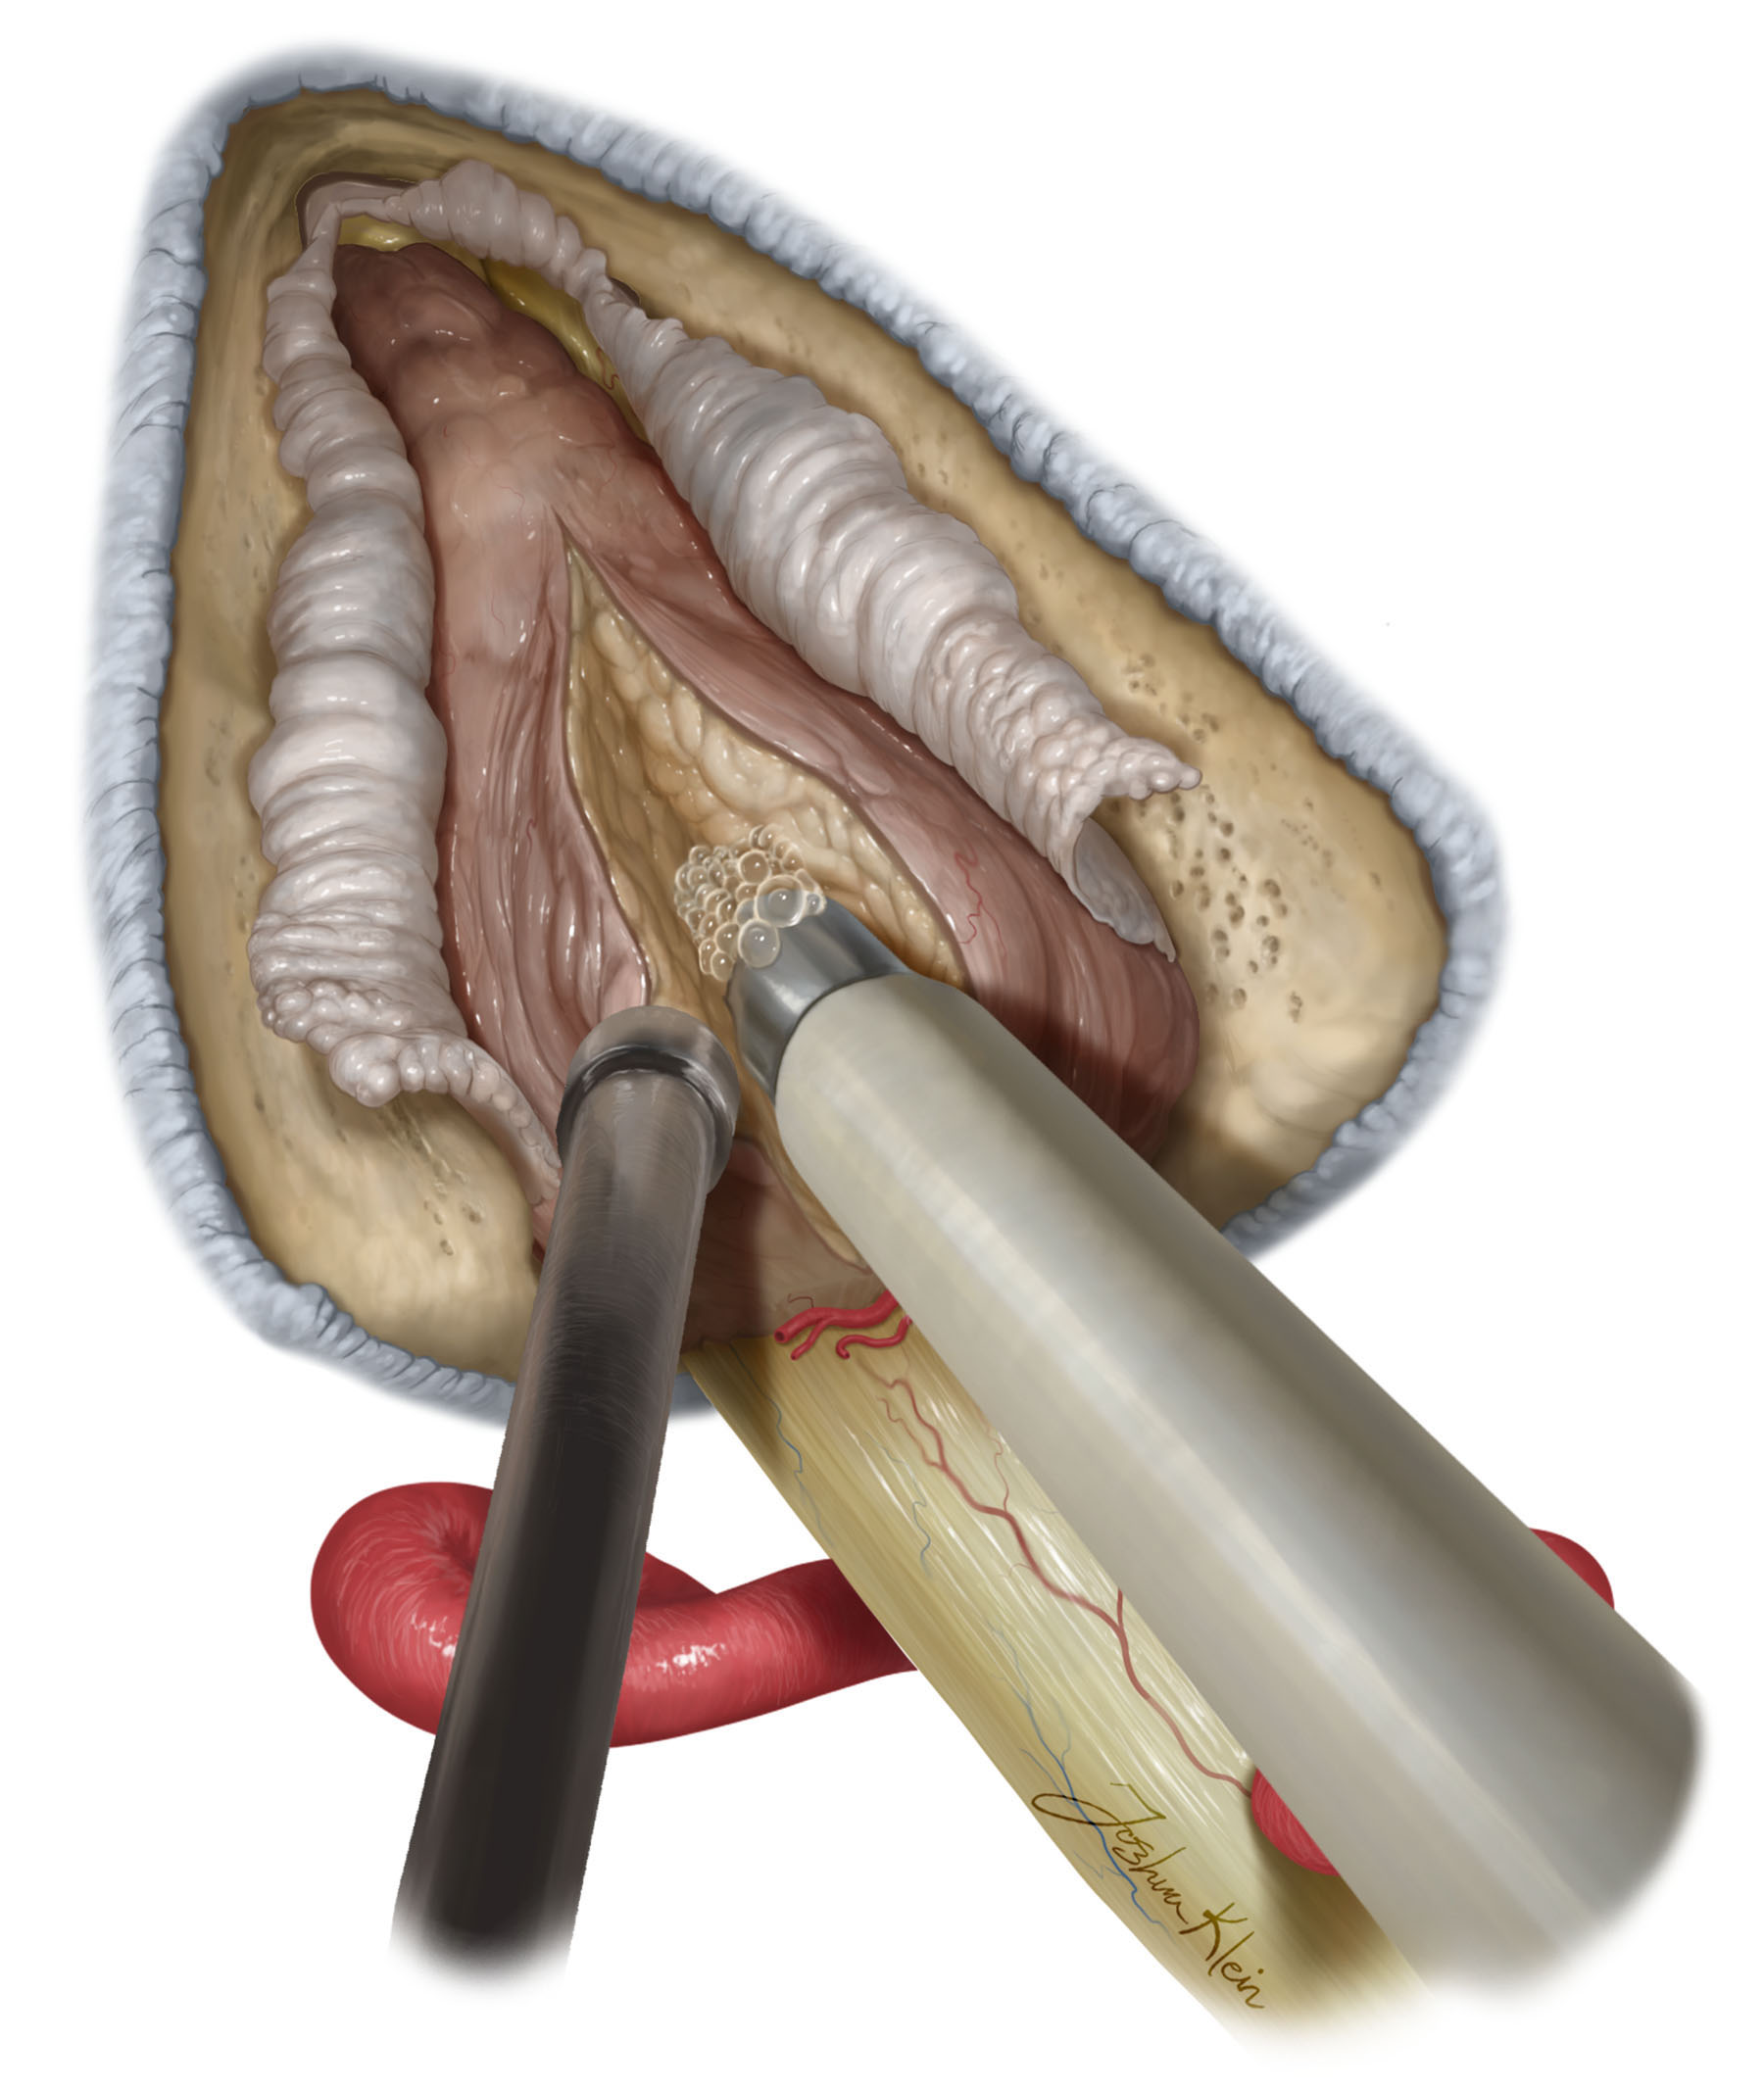 Figure 7: The arachnoid layer containing the blood supply to the vestibulocochlear nerve is dissected from the tumor capsule to ensure preservation of hearing. The tumor is then debulked.